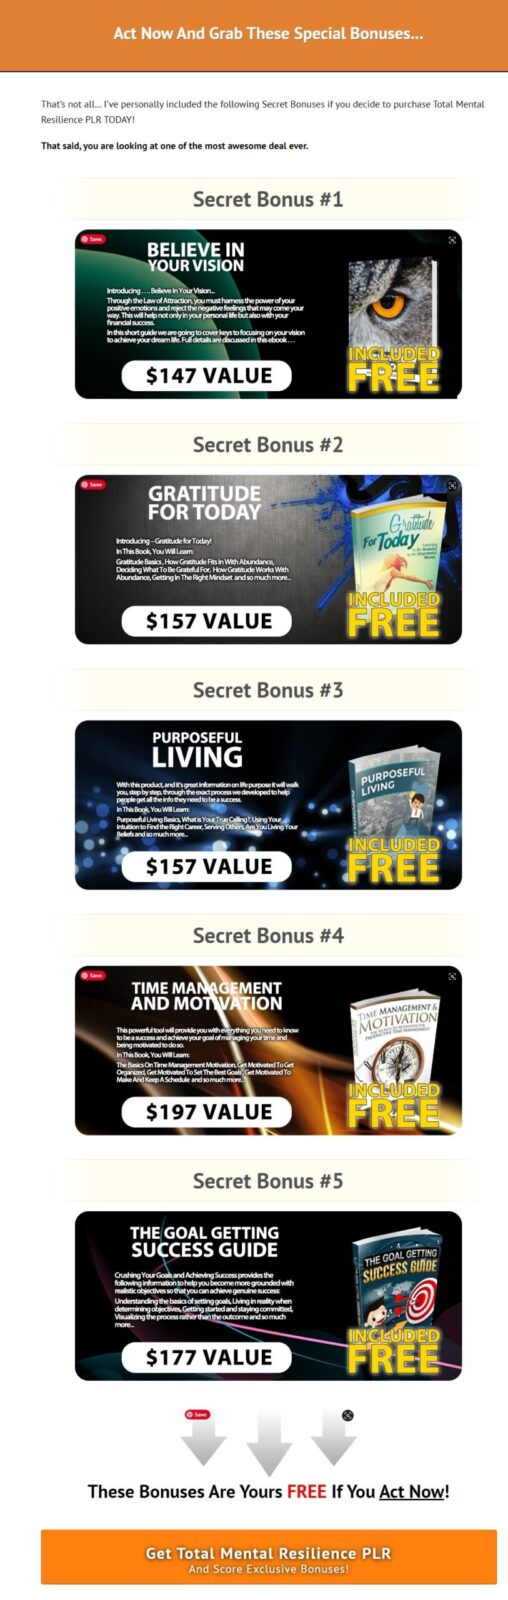 After making your purchase of TOTAL MENTAL RESILIENCE, the bonuses will be instantly available in your Customer Portal. It is that simple! Just be doubly sure that you purchase through my recommendation link to qualify for this bonus bundle.